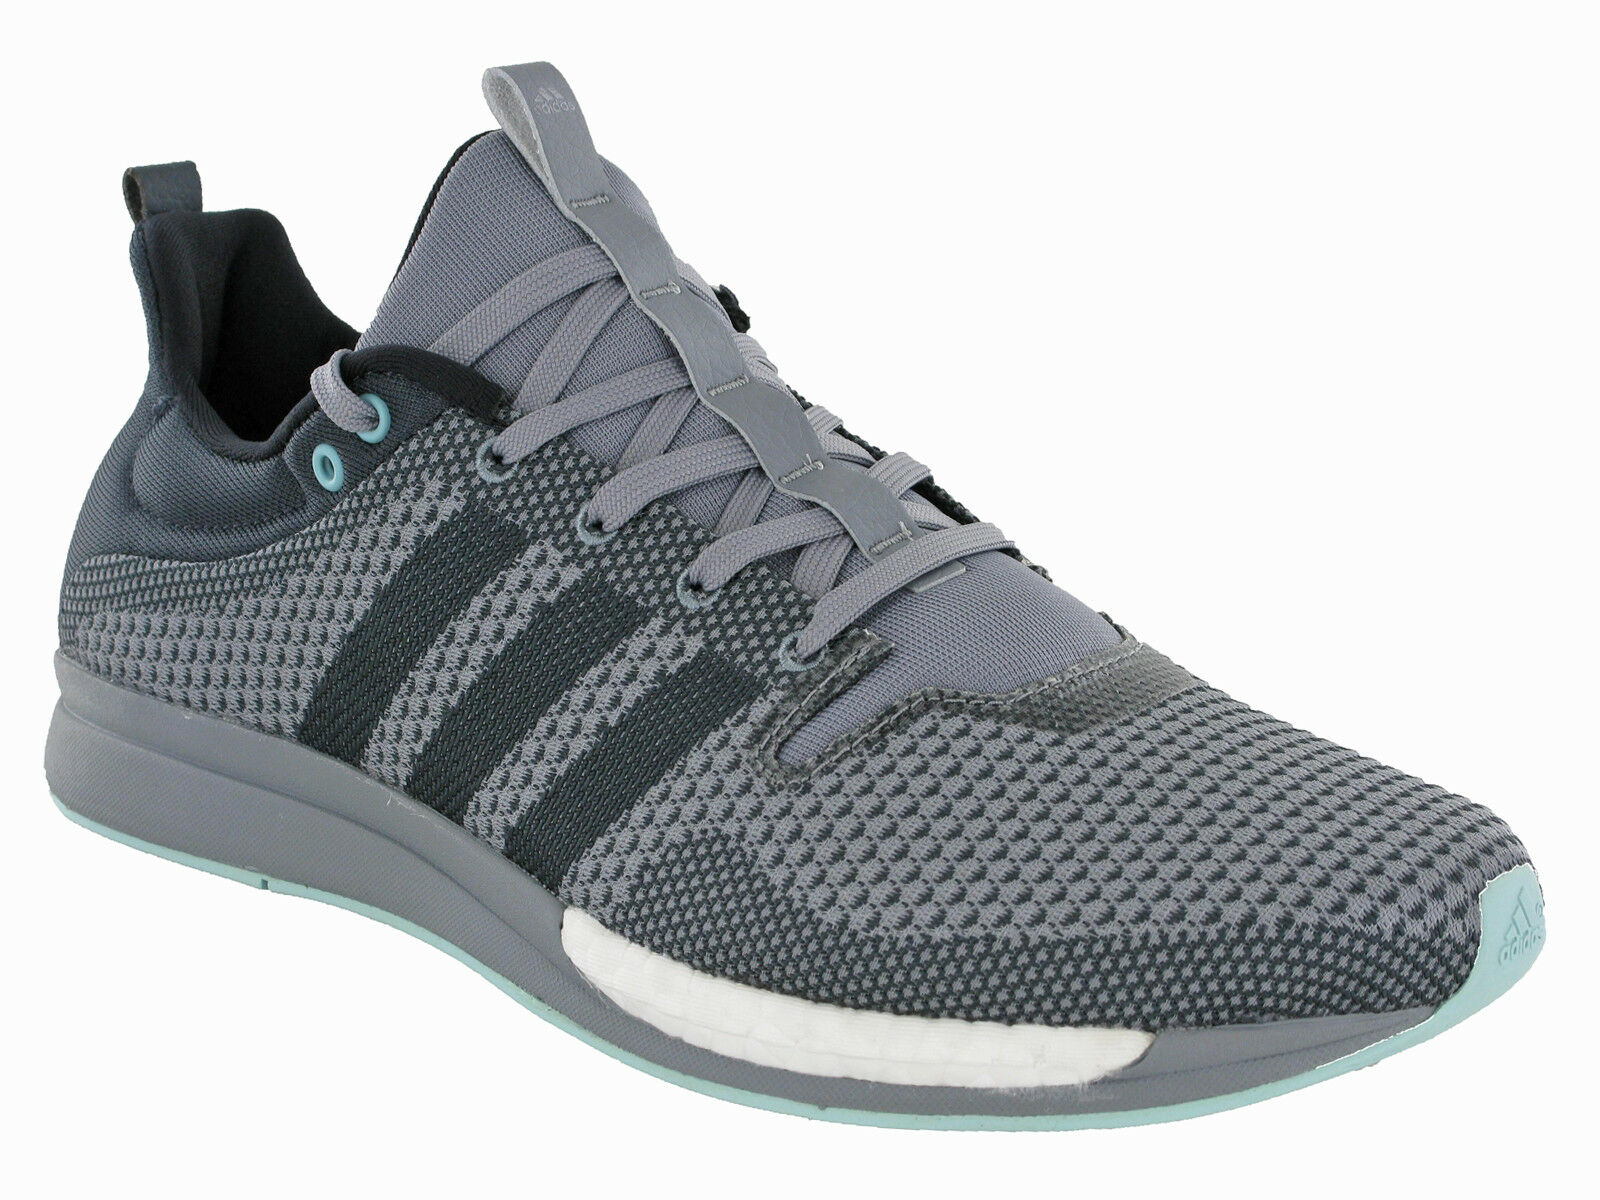 58543fbdeae4 Adidas Adizero Feather Trainers Running Lightweight Mesh Sports Men Grey  AQ5094